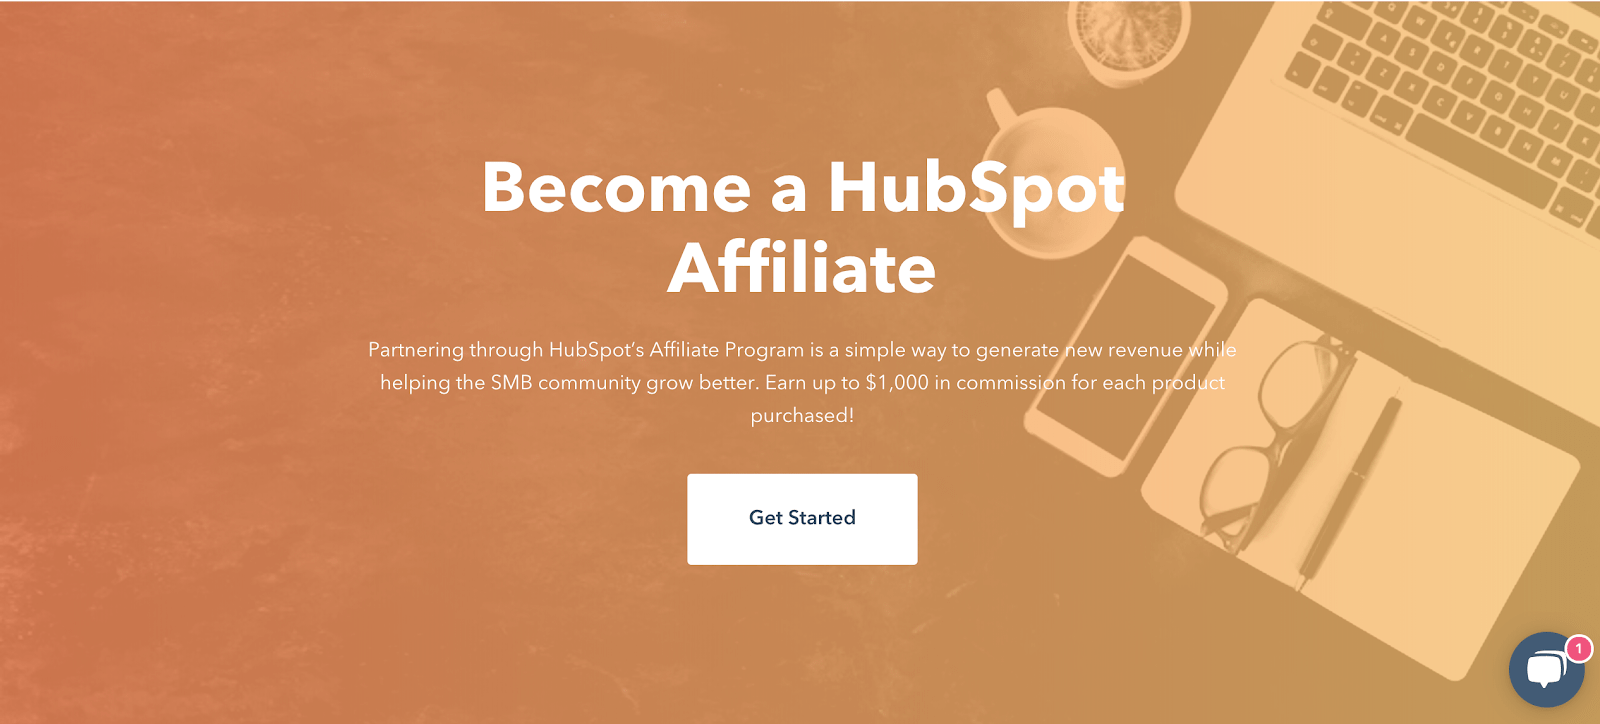 marketing funnel referral stage